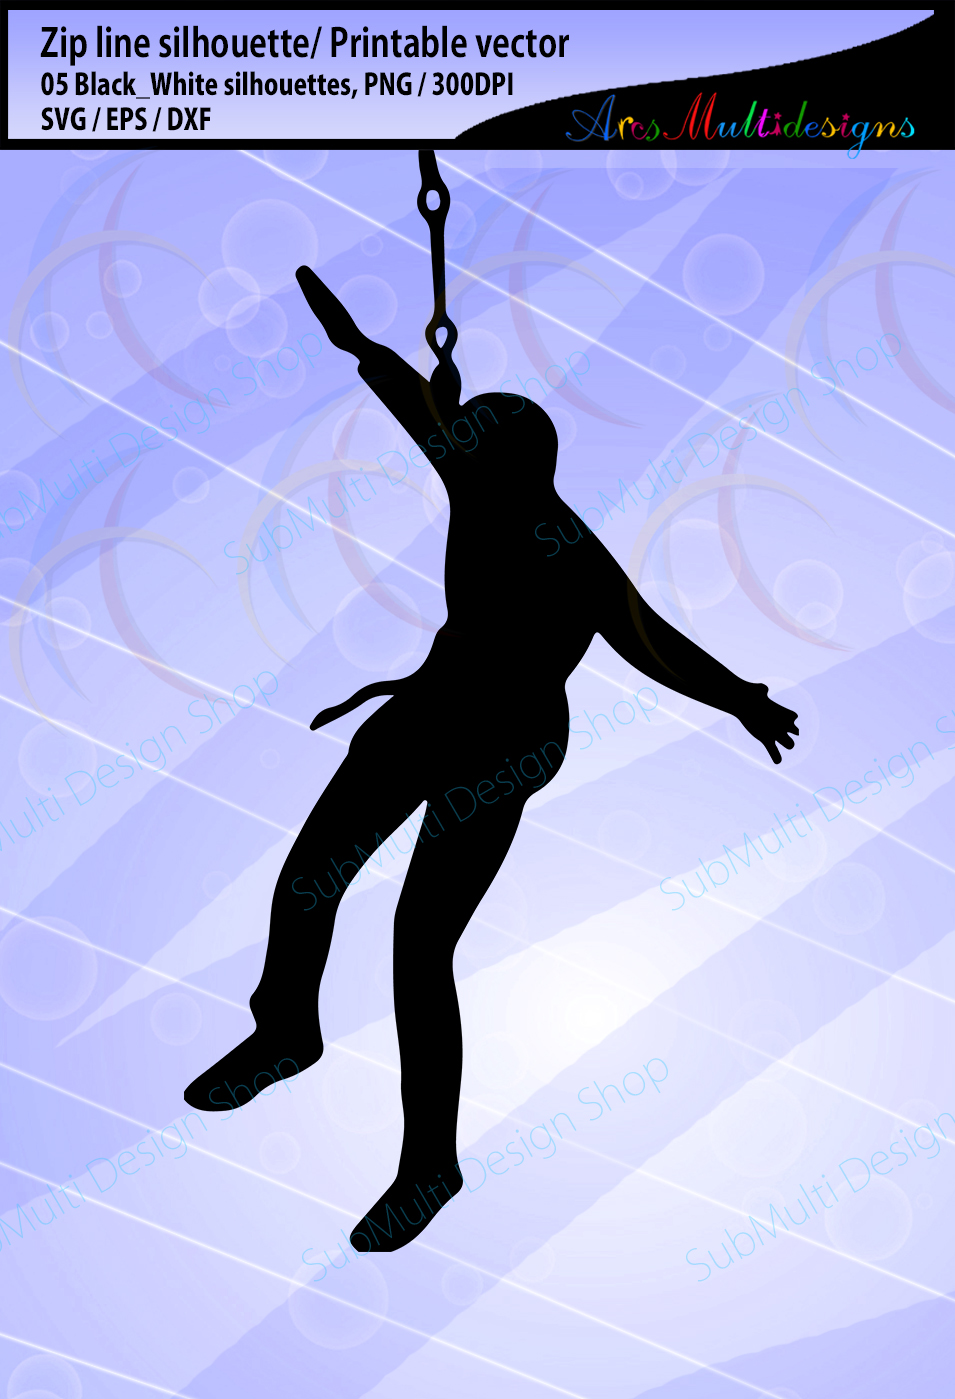 zip line silhouette / zip line ride silhouette / SVG vector / zip line clipart / Commerical use / Digital File vector example image 2